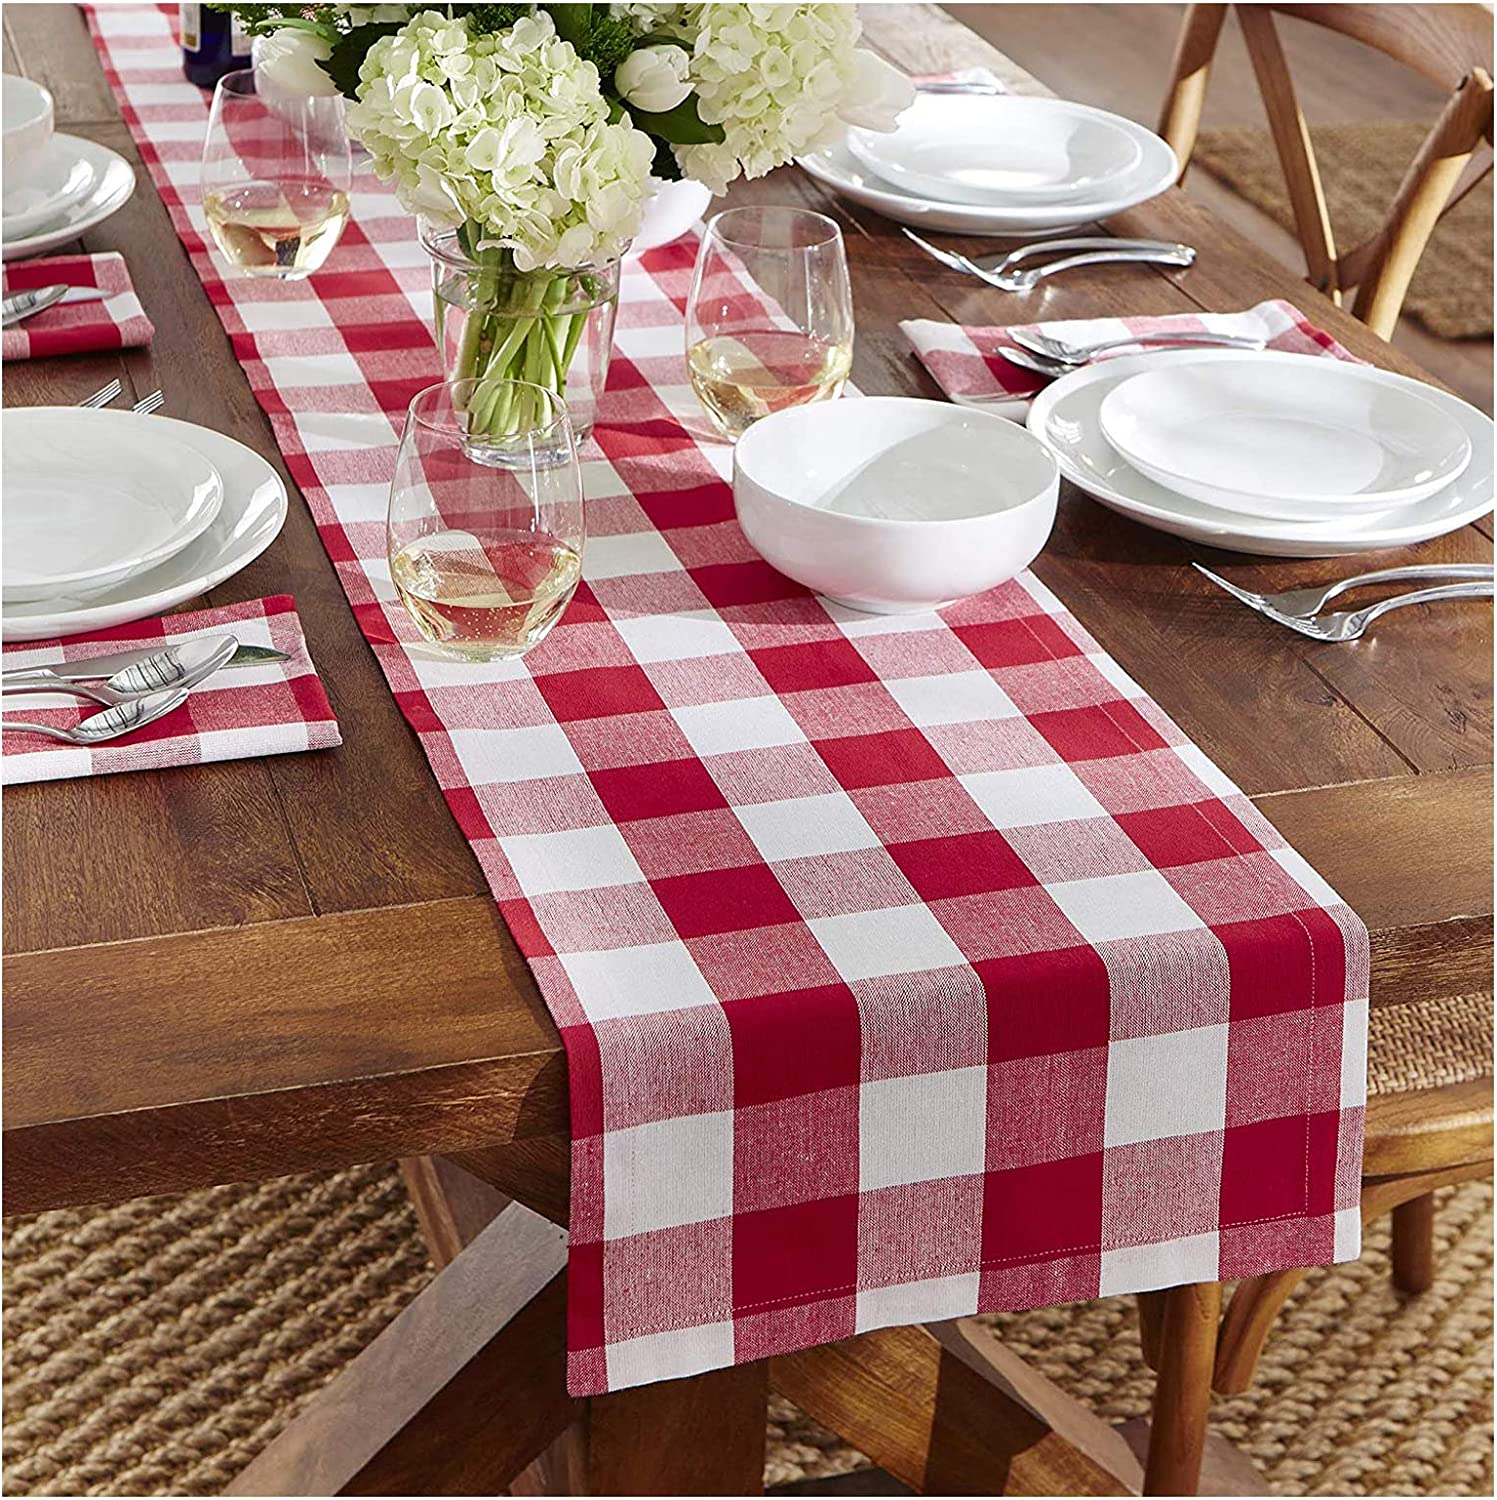 Fysupotsu Buffalo Plaid Checkered Table Runner, Cotton Burlap Table Decor for Family Dinner,Farmhouse, Christmas,Thanksgiving, Birthday Party,Outdoor Event (Table Runner,14x108, Red & White)